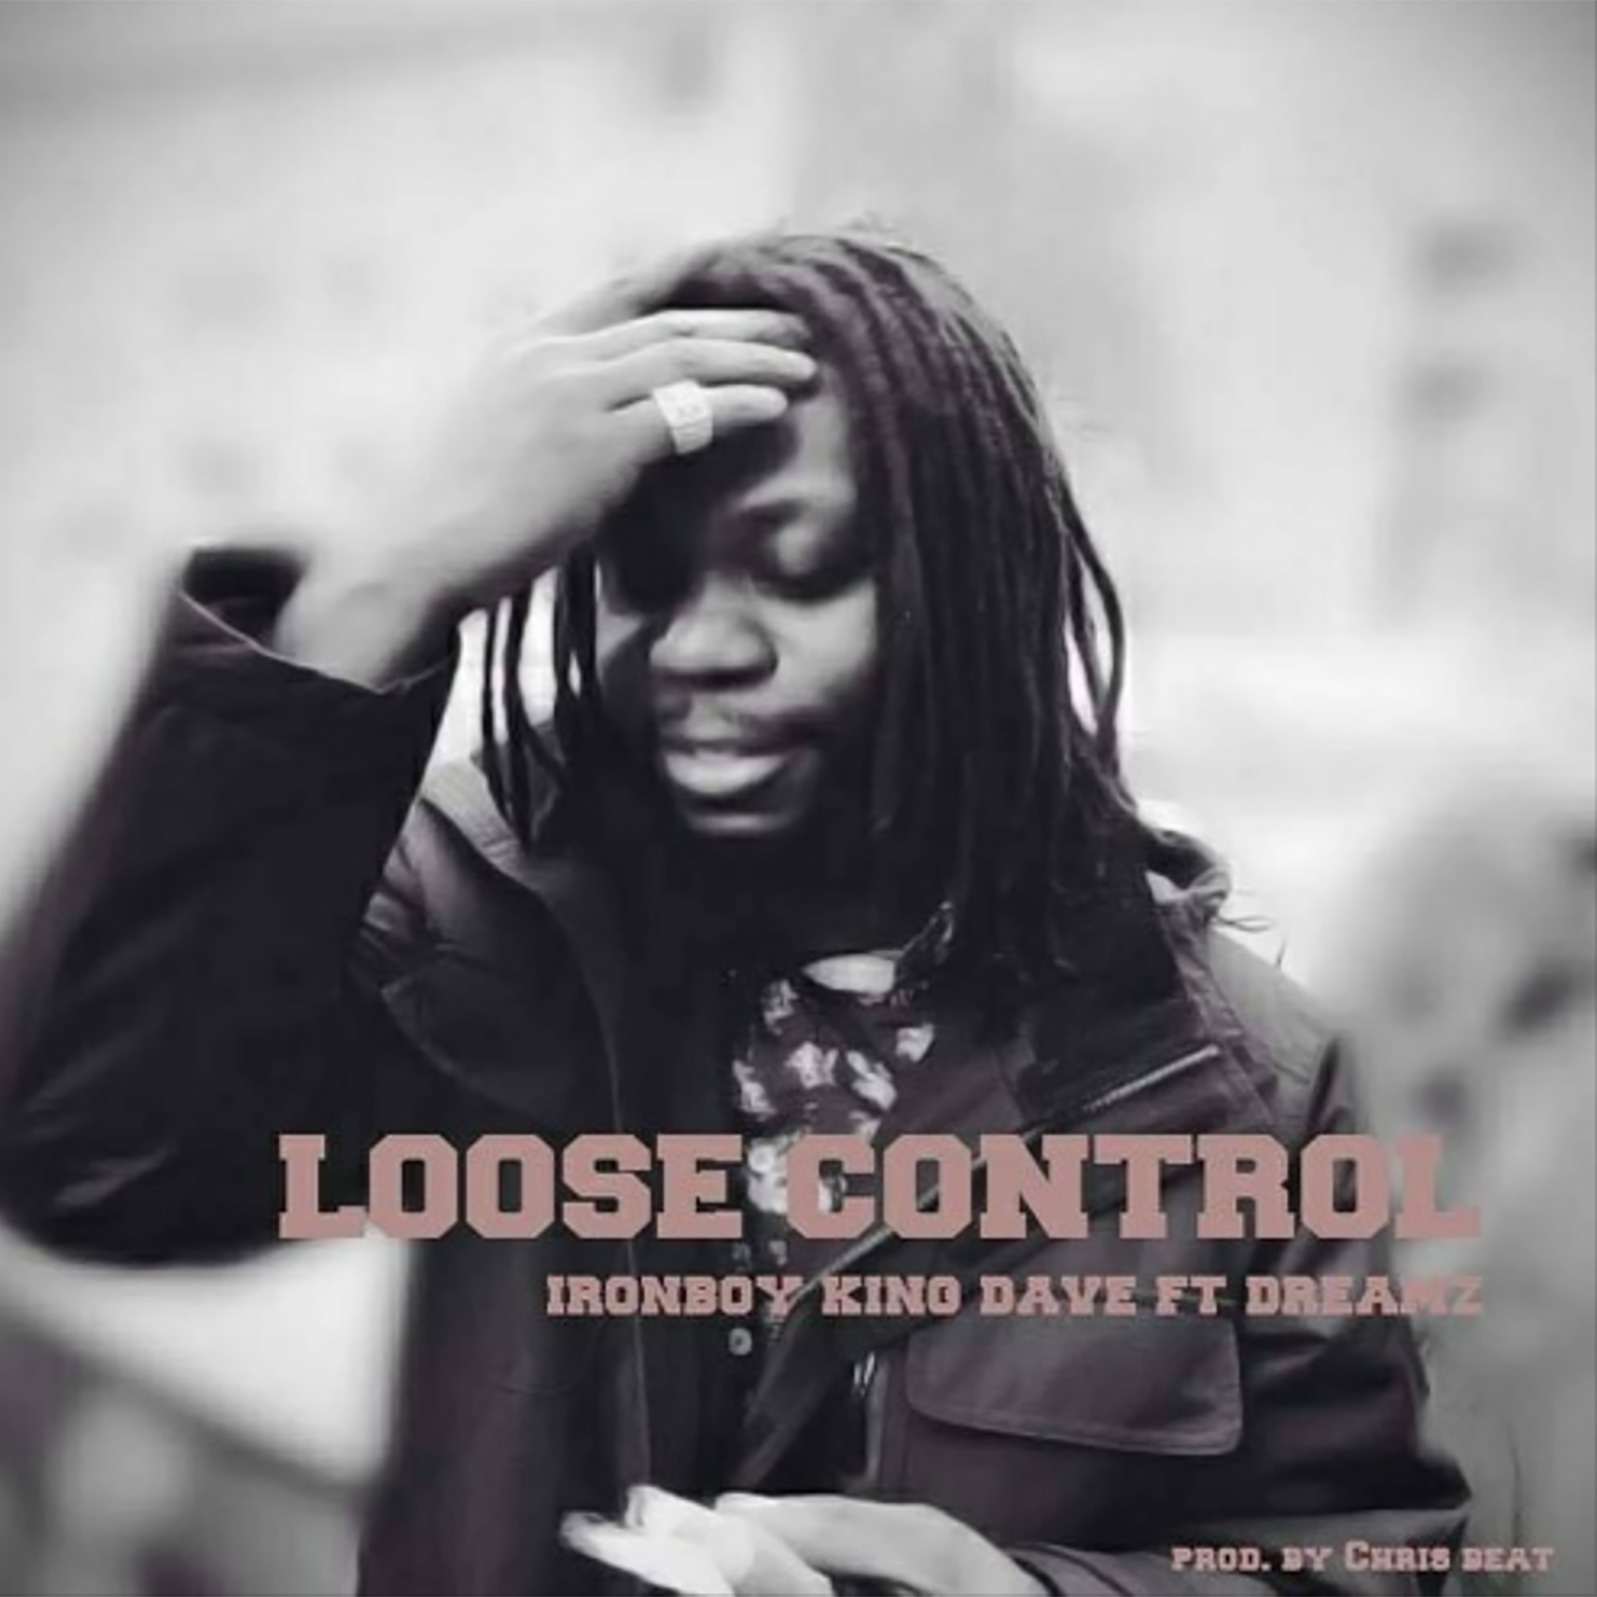 Loose Control by King Dave (Iron Boy) feat. Dreamz